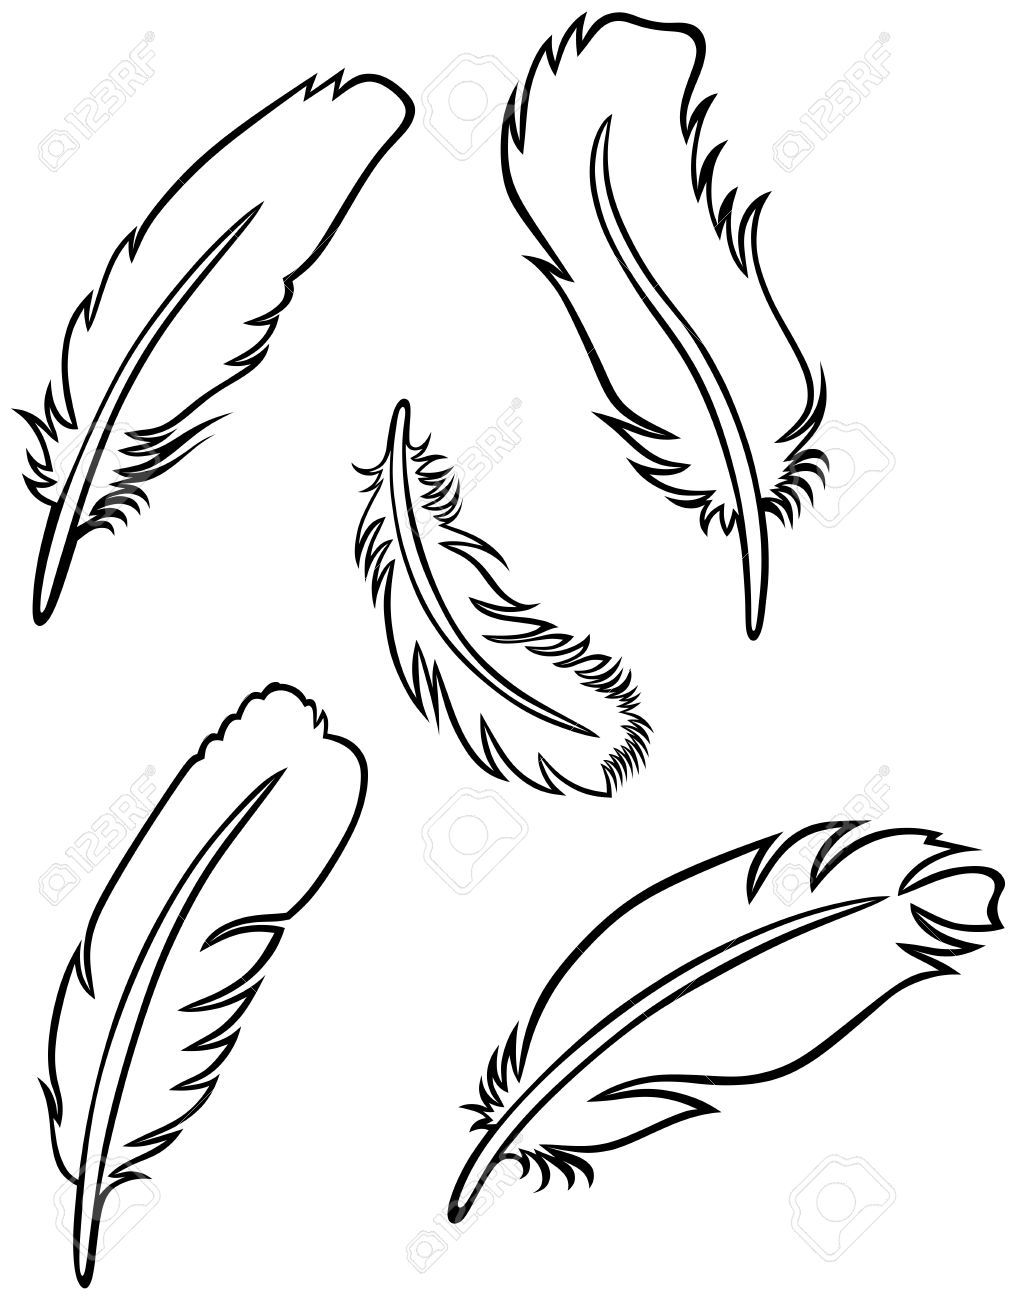 easy feather drawings.